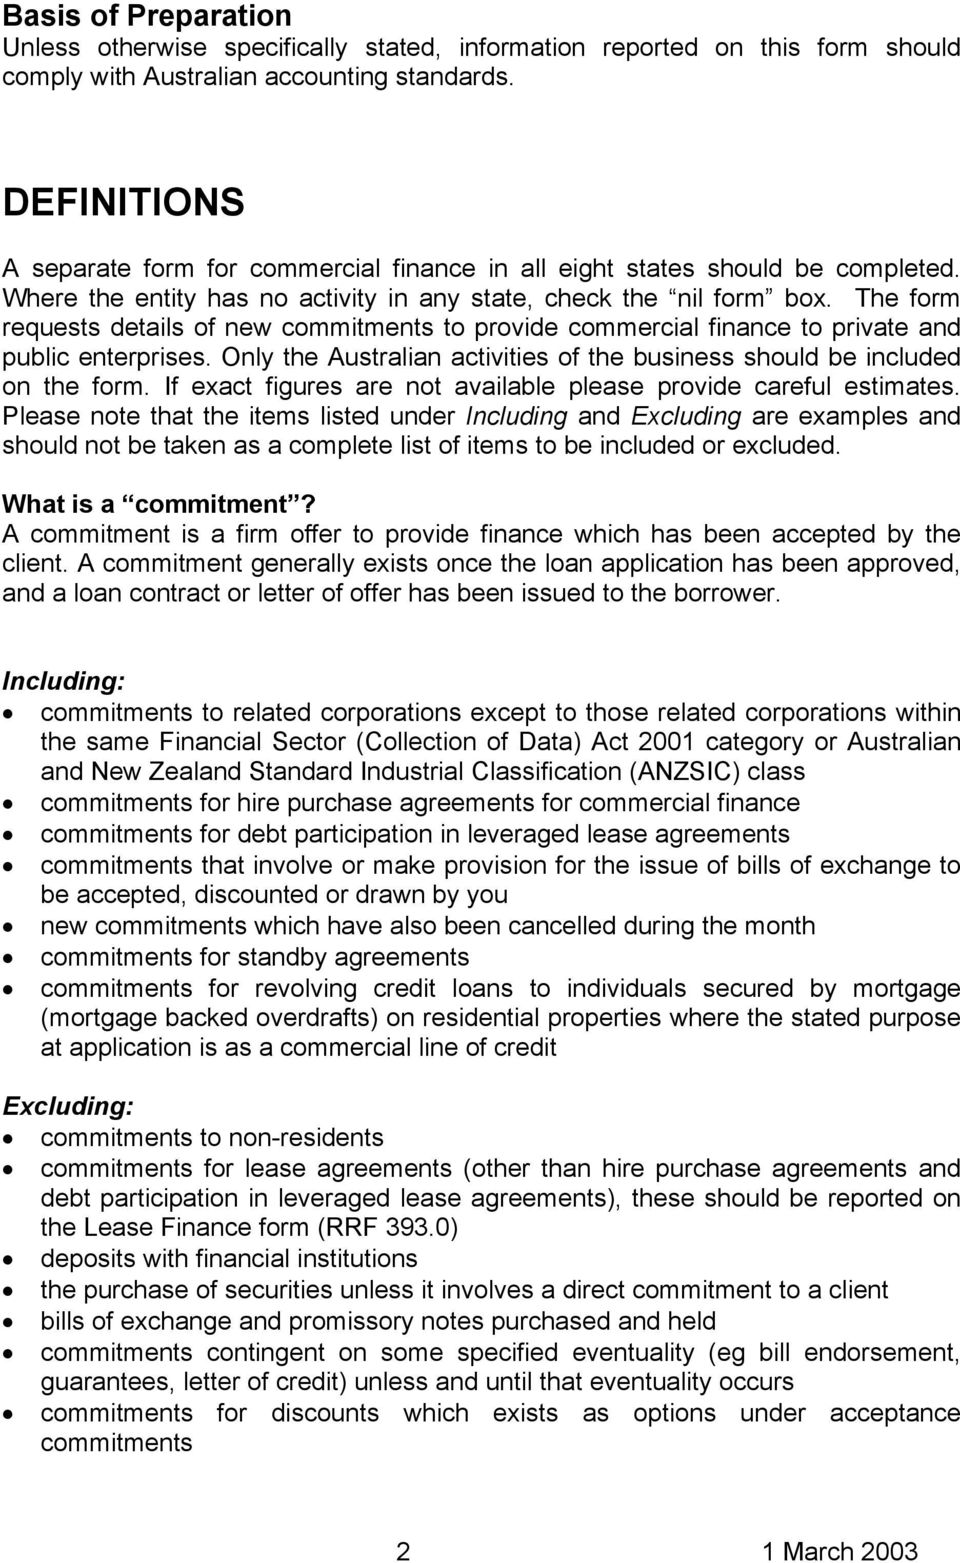 The form requests details of new commitments to provide commercial finance to private and public enterprises. Only the Australian activities of the business should be included on the form.